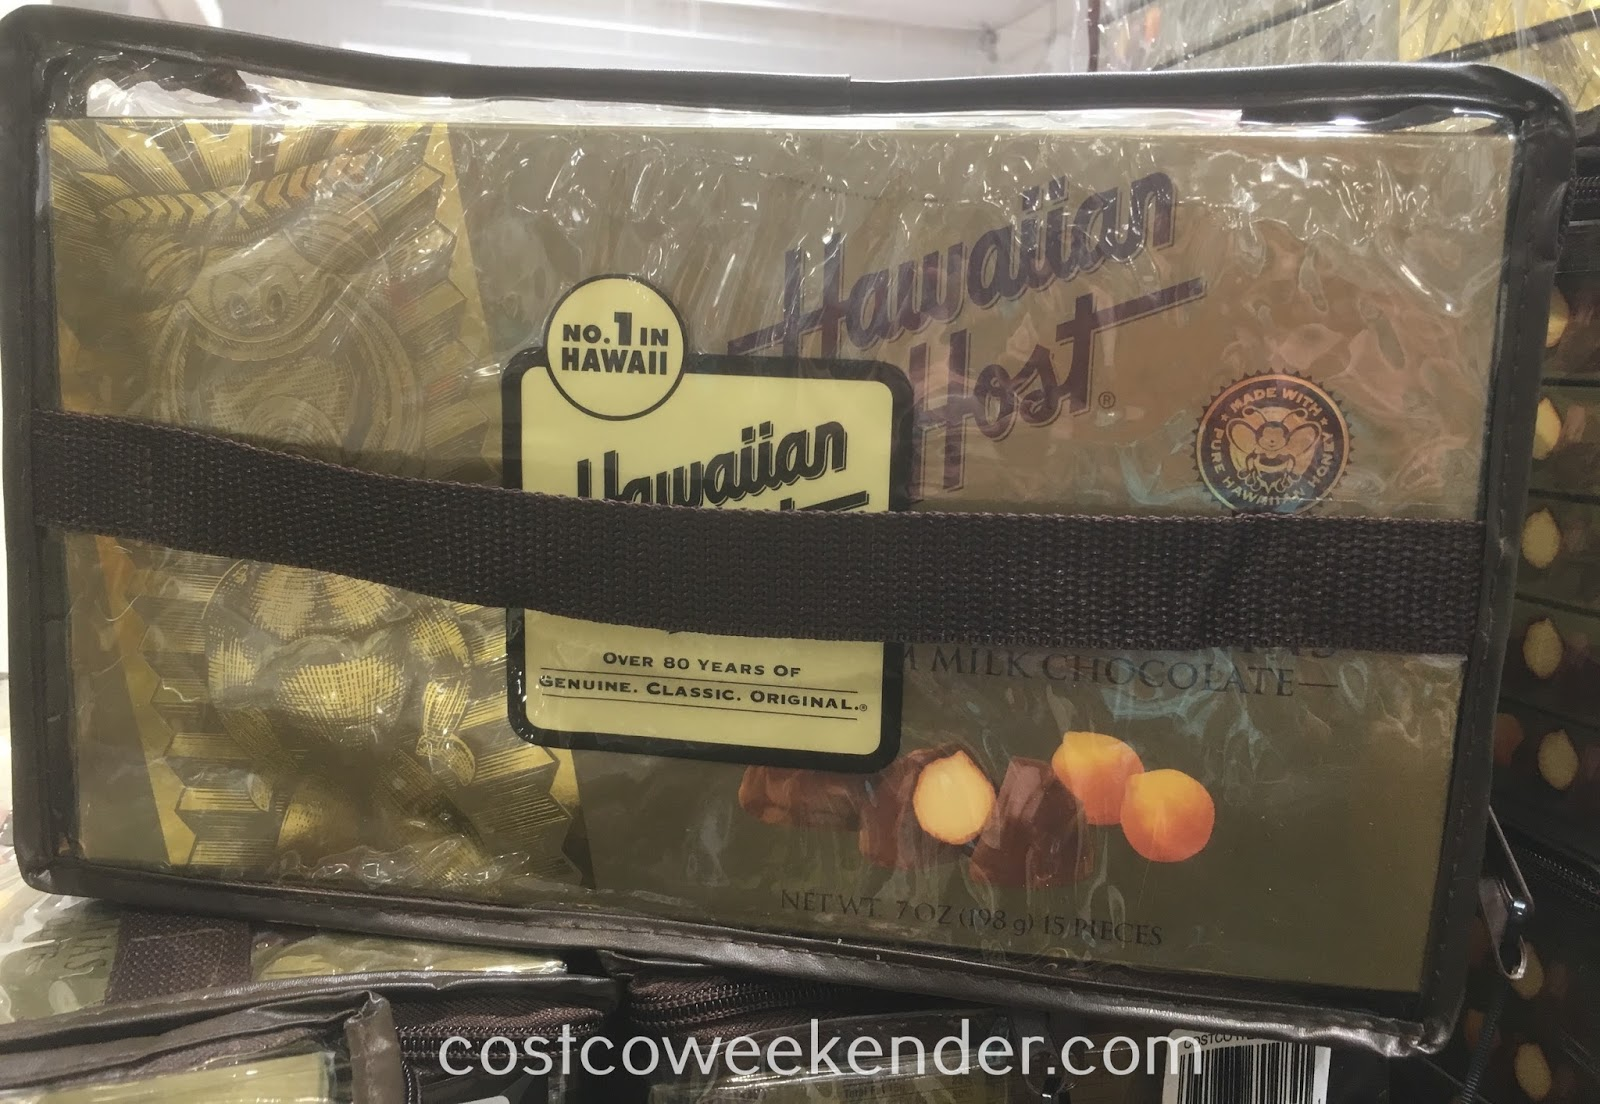 If you want the best chocolate-covered macadamias, then look no further than Hawaiian Host